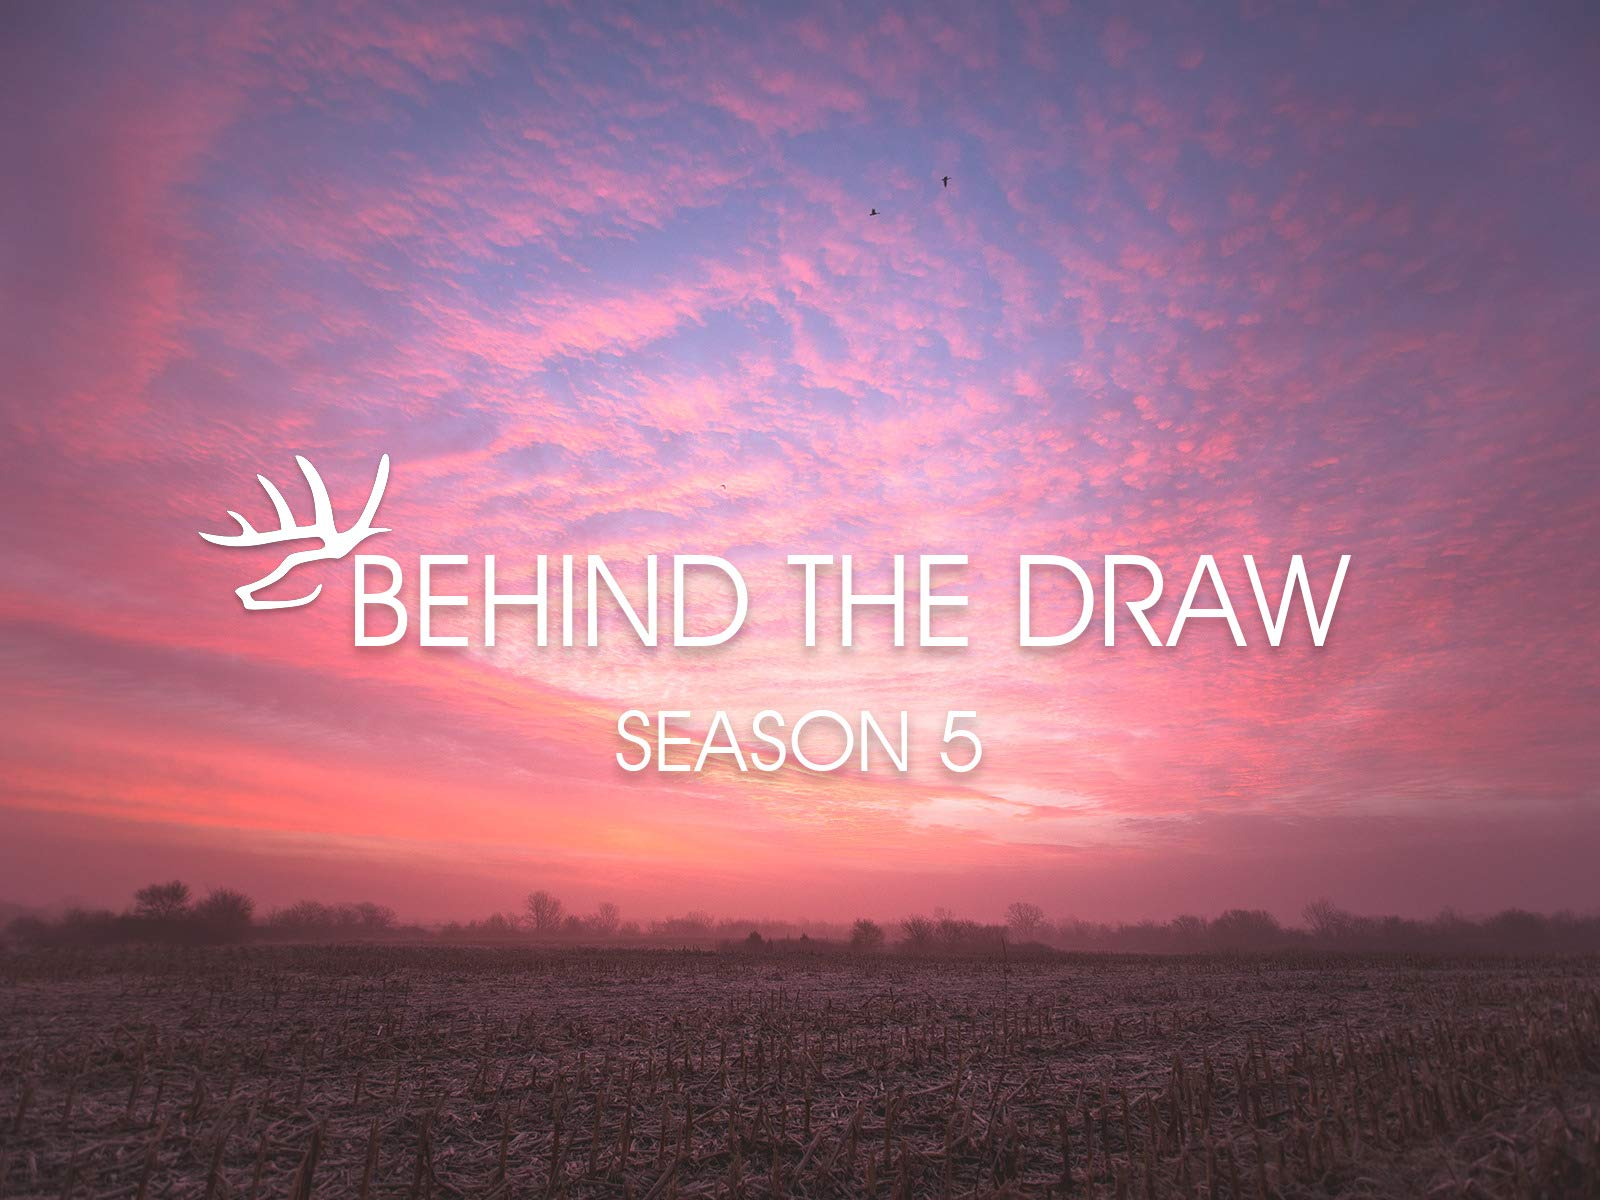 Behind The Draw